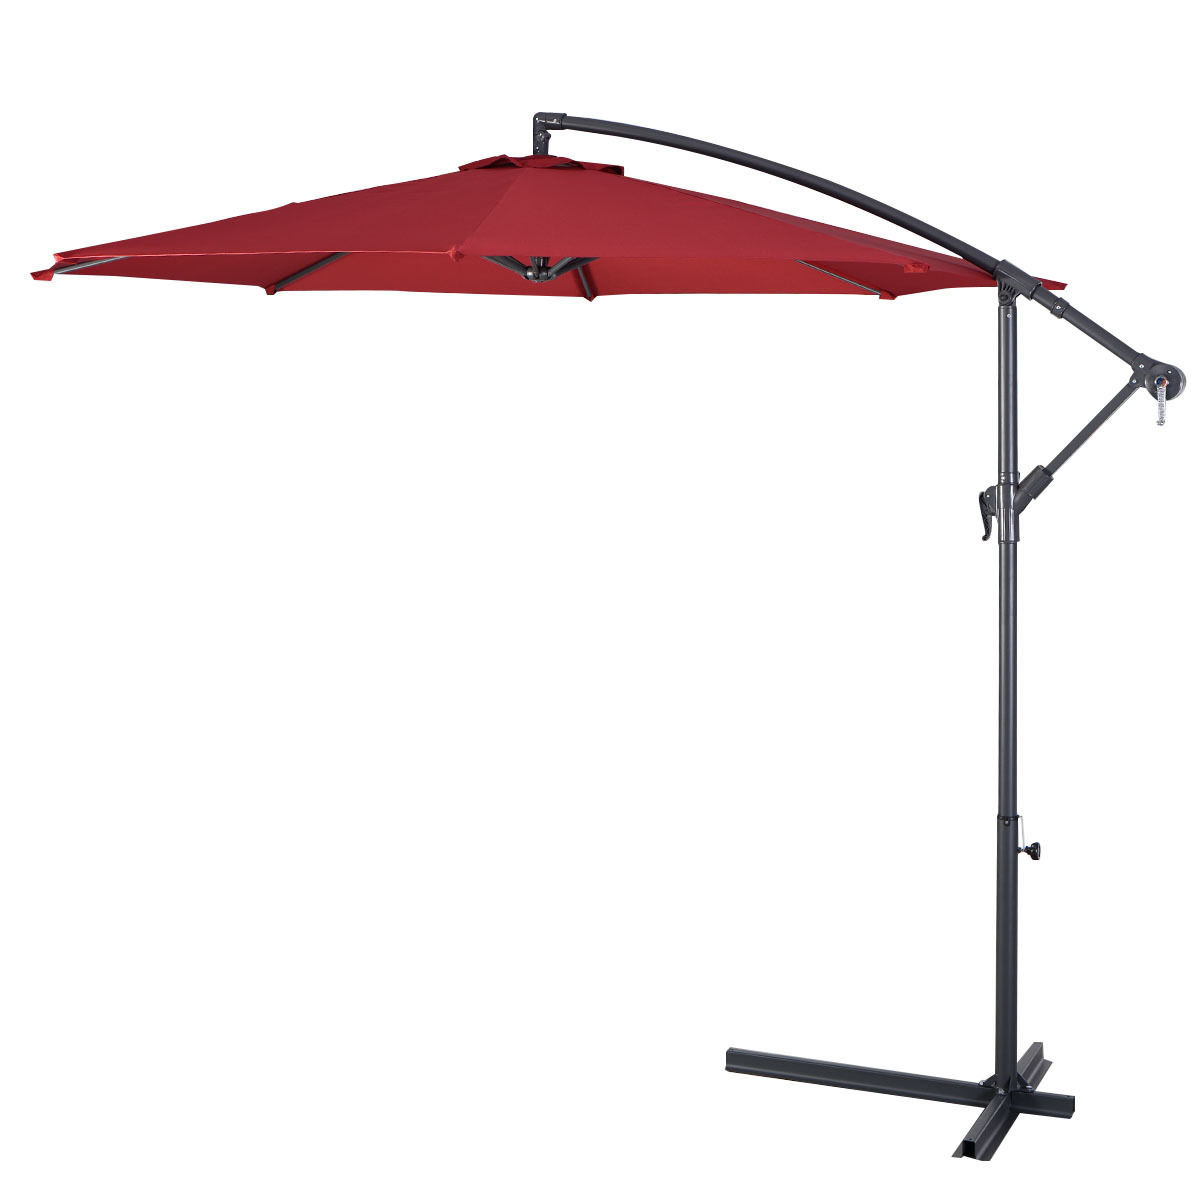 Most Popular Imogen Hanging Offset Cantilever Umbrellas Intended For Imogen Hanging Offset 10' Cantilever Umbrella (View 8 of 20)